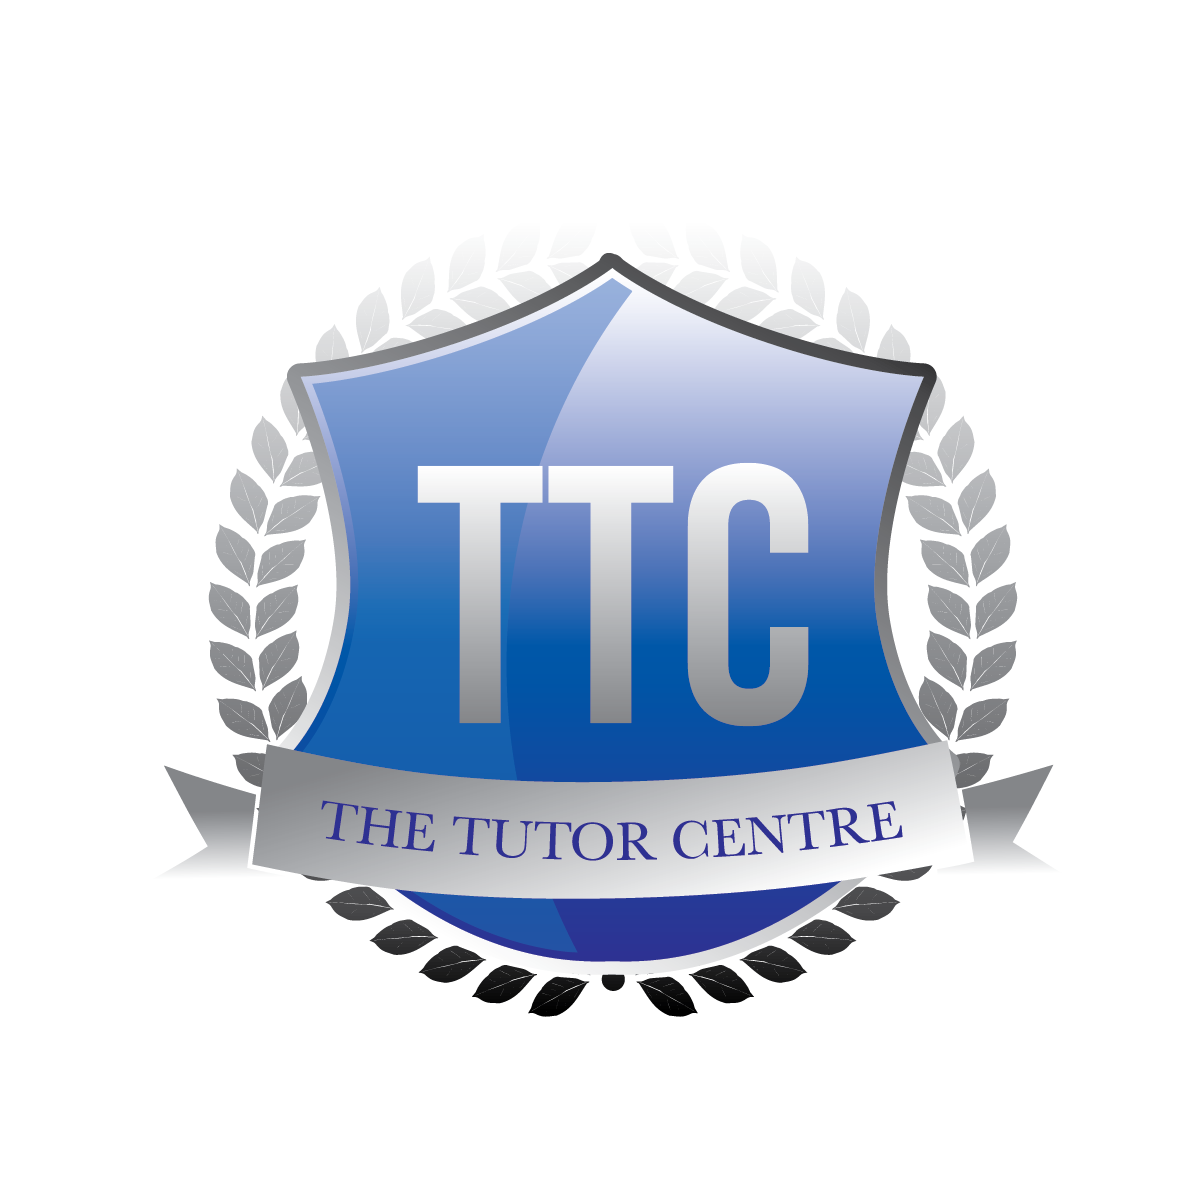 The Tutor Centre